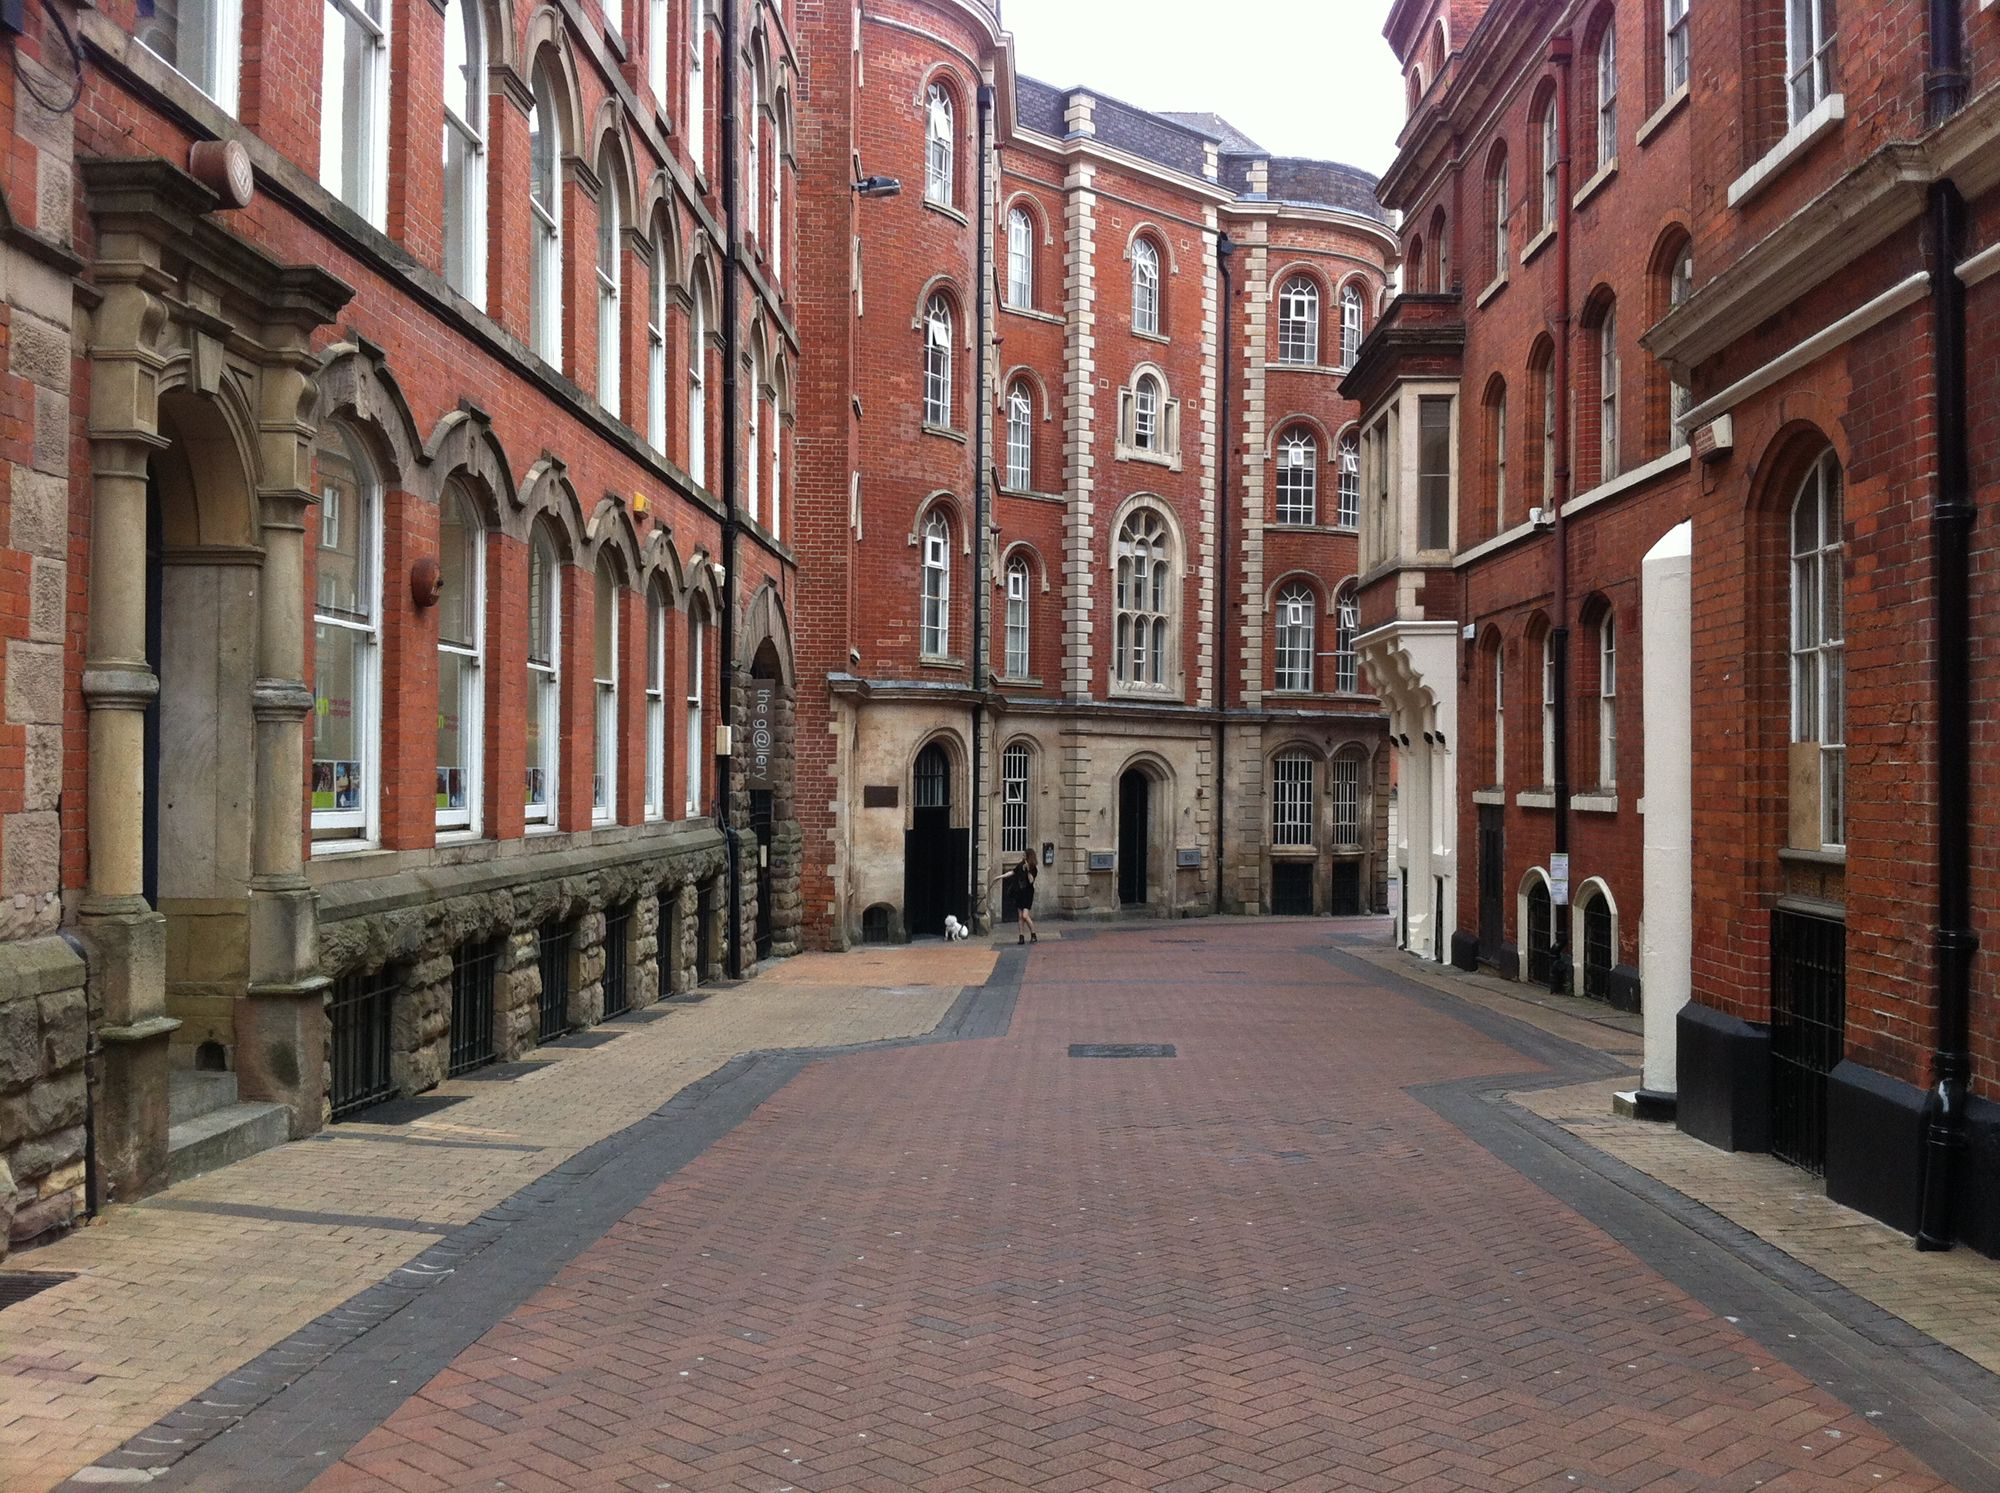 The Lace Market Nottingham